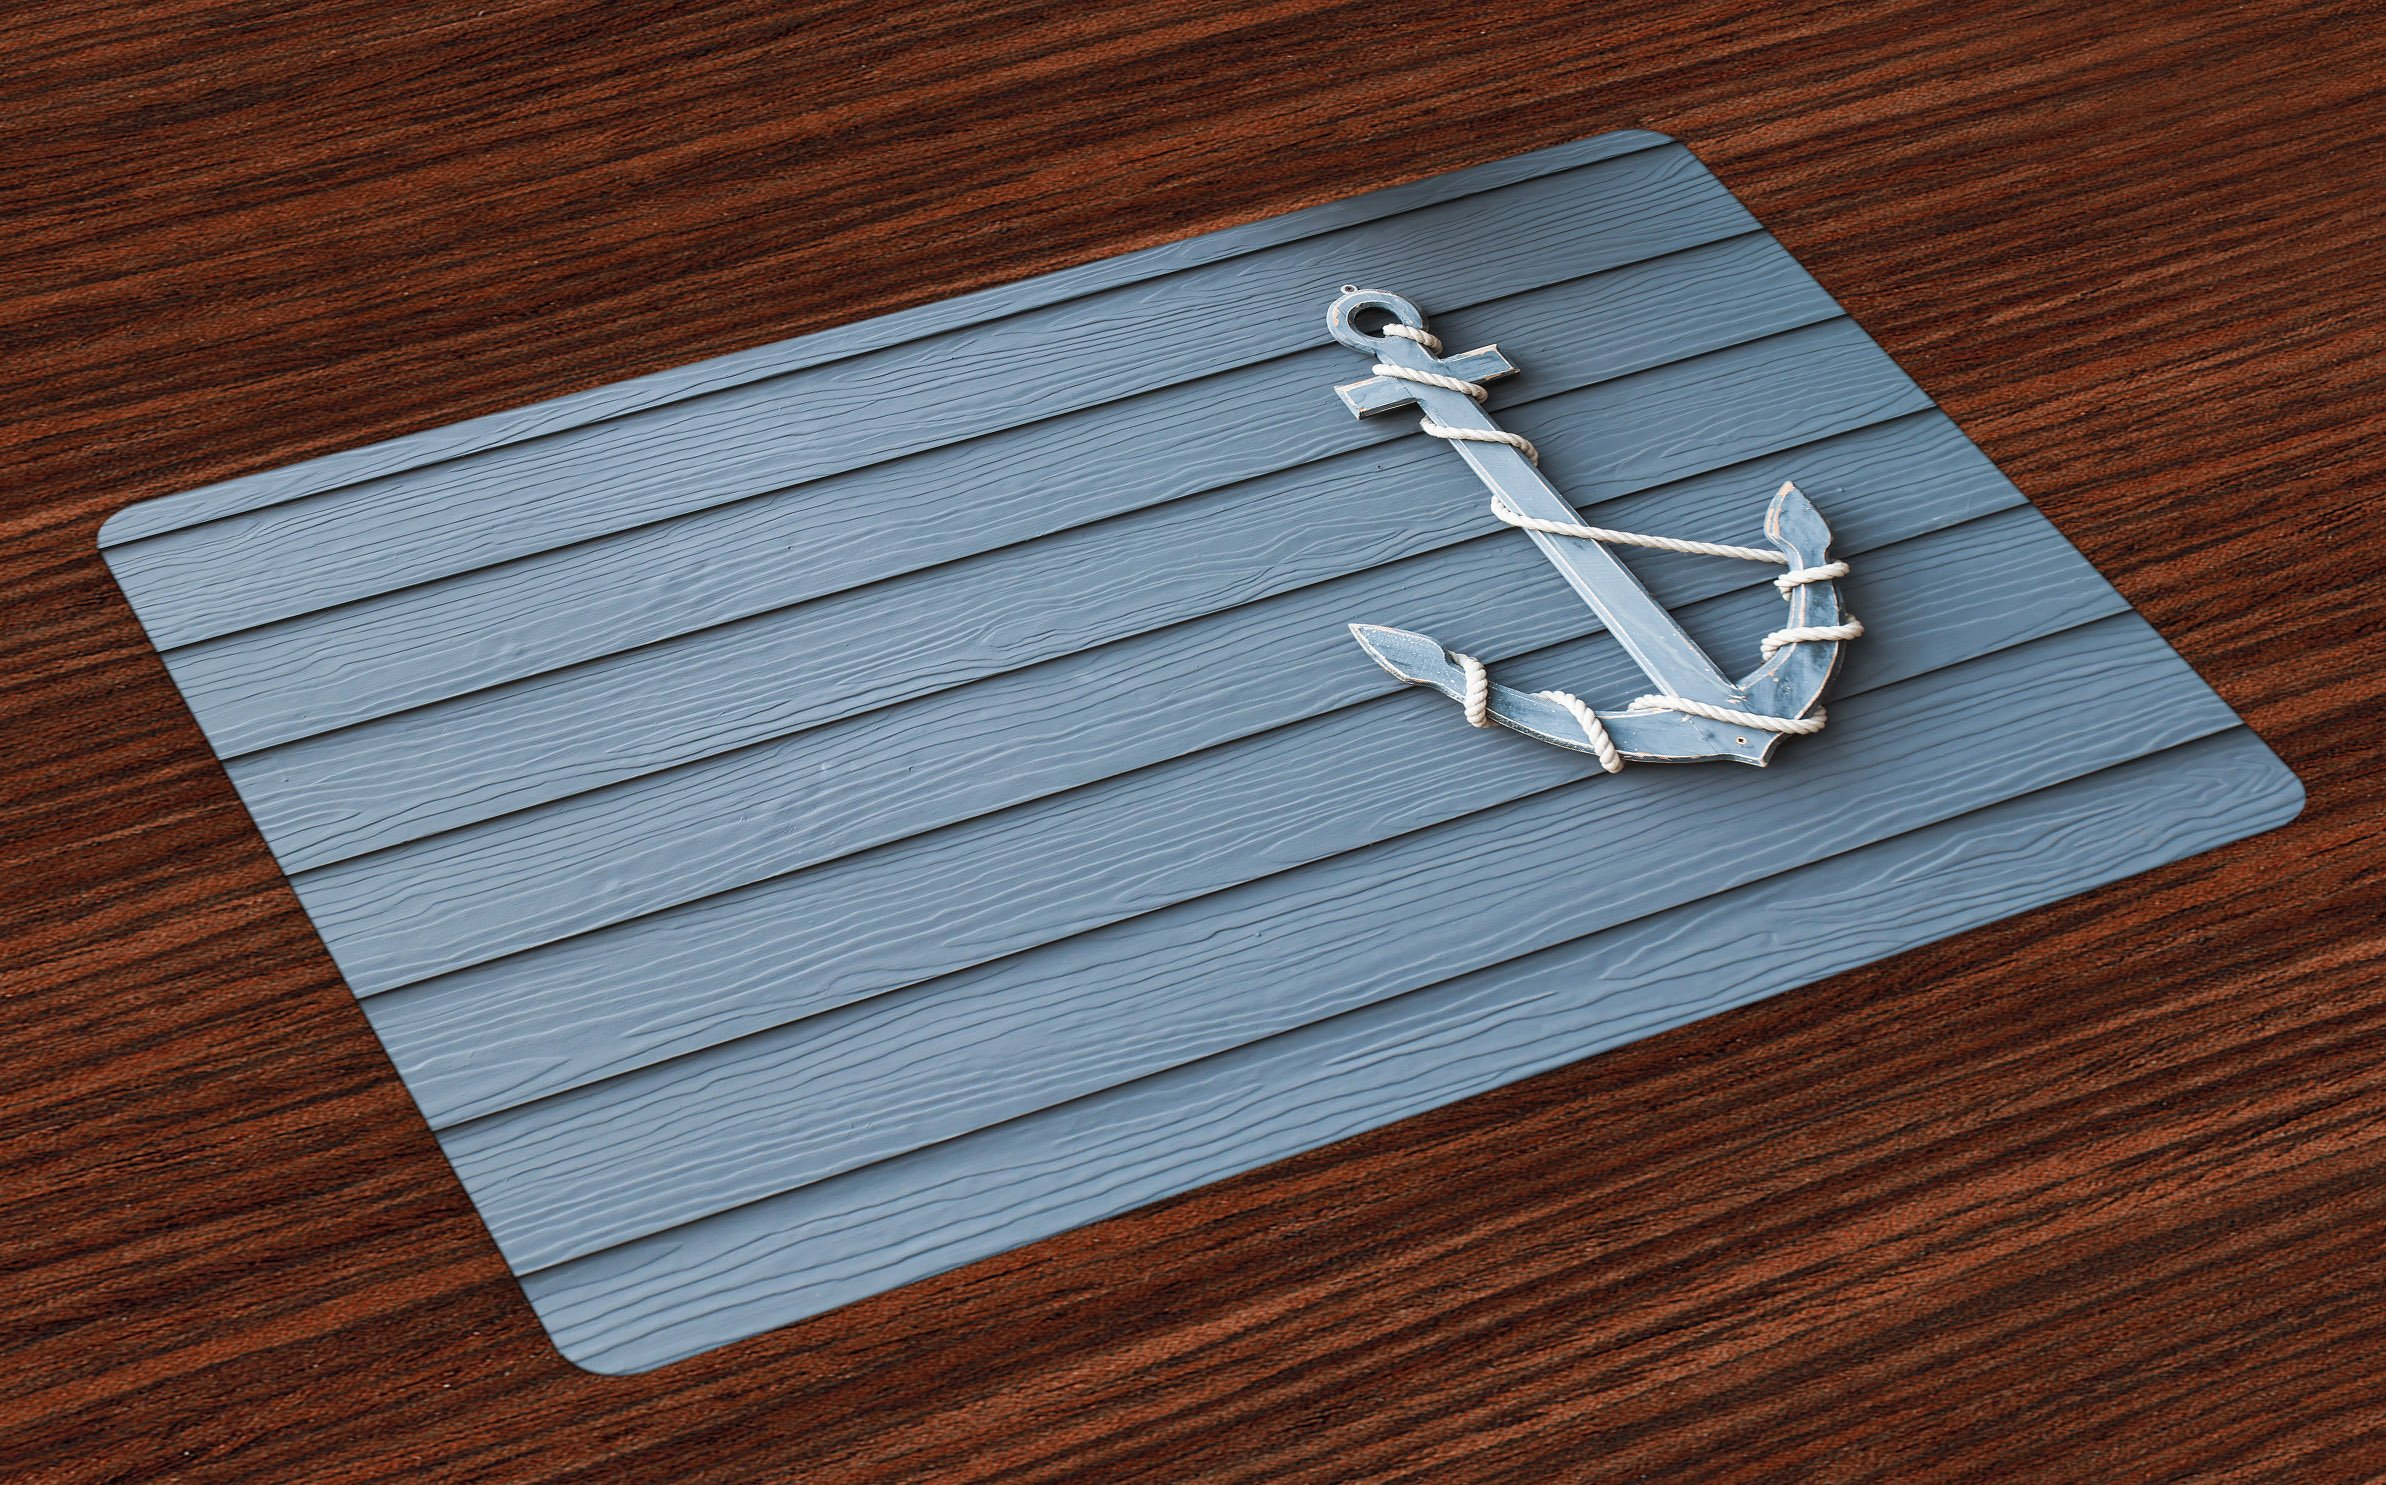 Lunarable Nautical Place Mats Set of 4, Anchor with Marine Rope on Digital Print of Wooden Planks Sea Ocean Life Theme, Washable Fabric Placemats for Dining Room Kitchen Table Decor, Blue and Grey